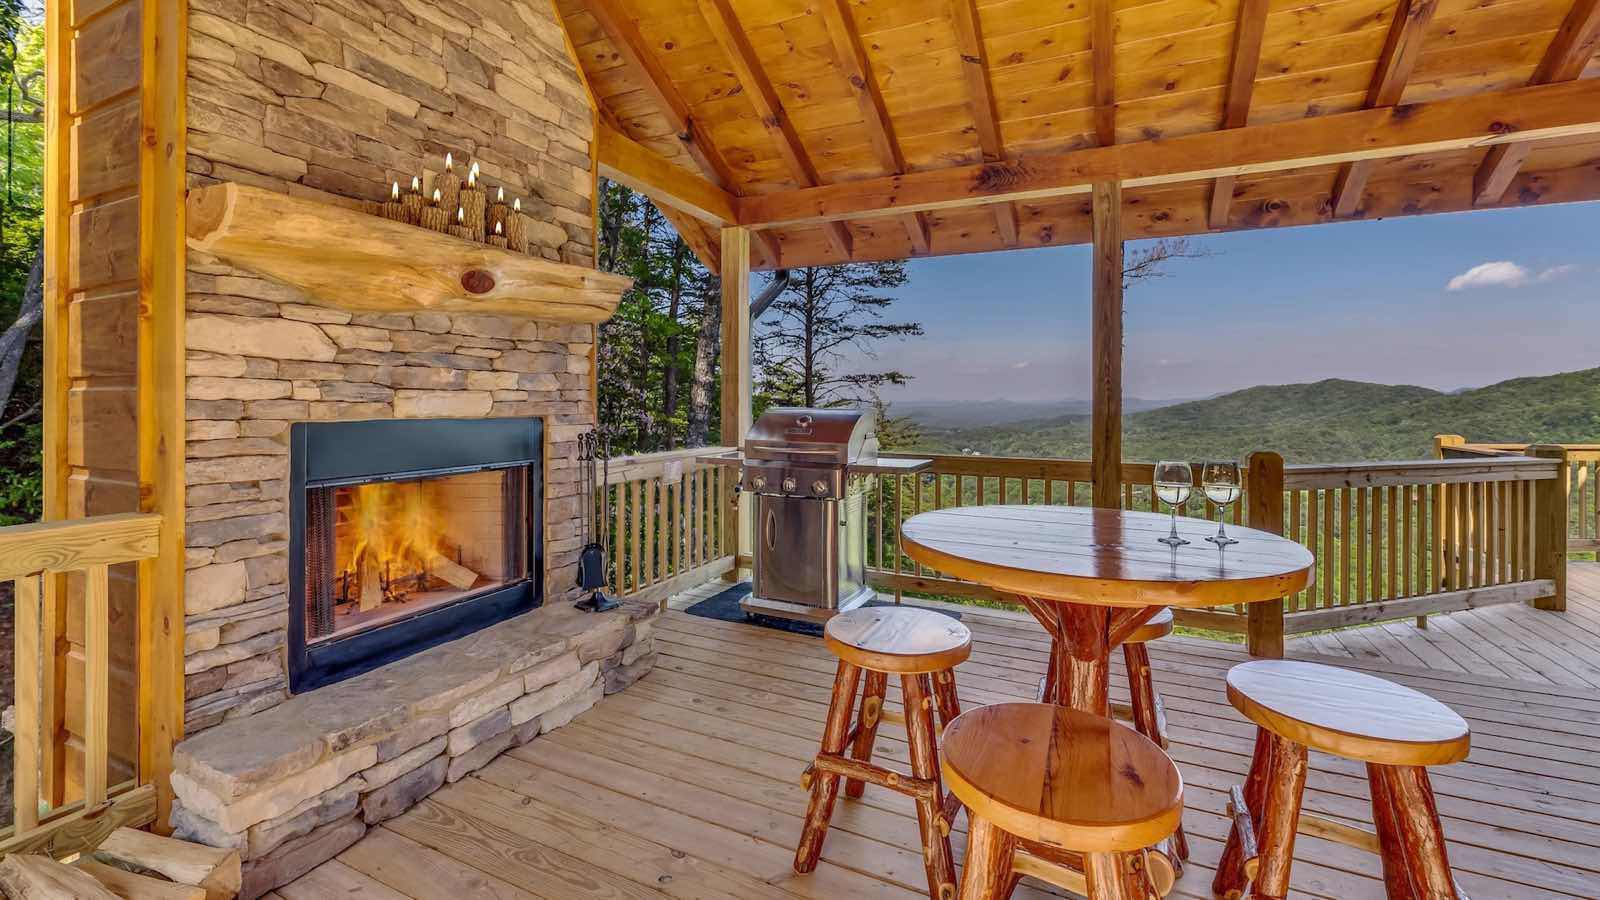 georgia mountain north for cabins log cabinkitchen view sale rent in listingscabinsmtnview